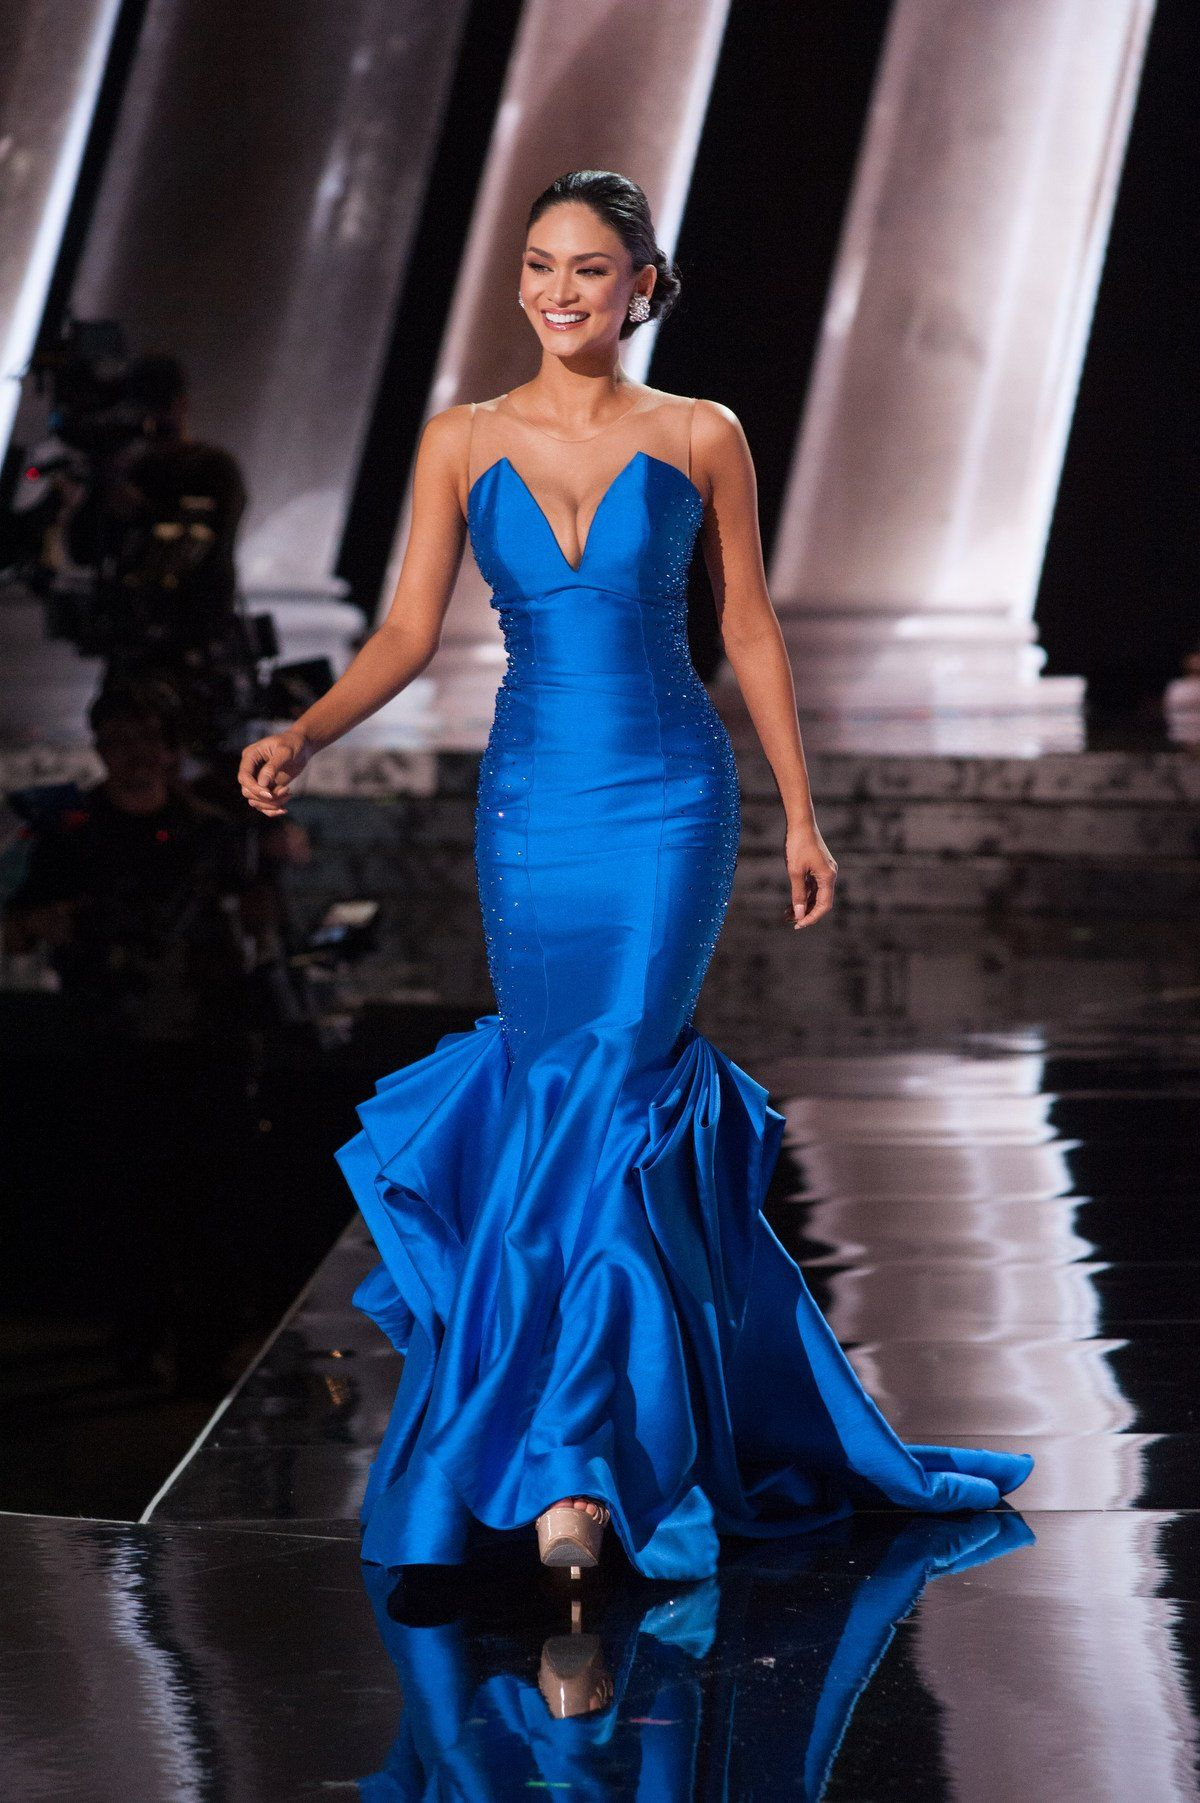 missuniversephilippines: Miss Universe 2015 : Evening Gown ...